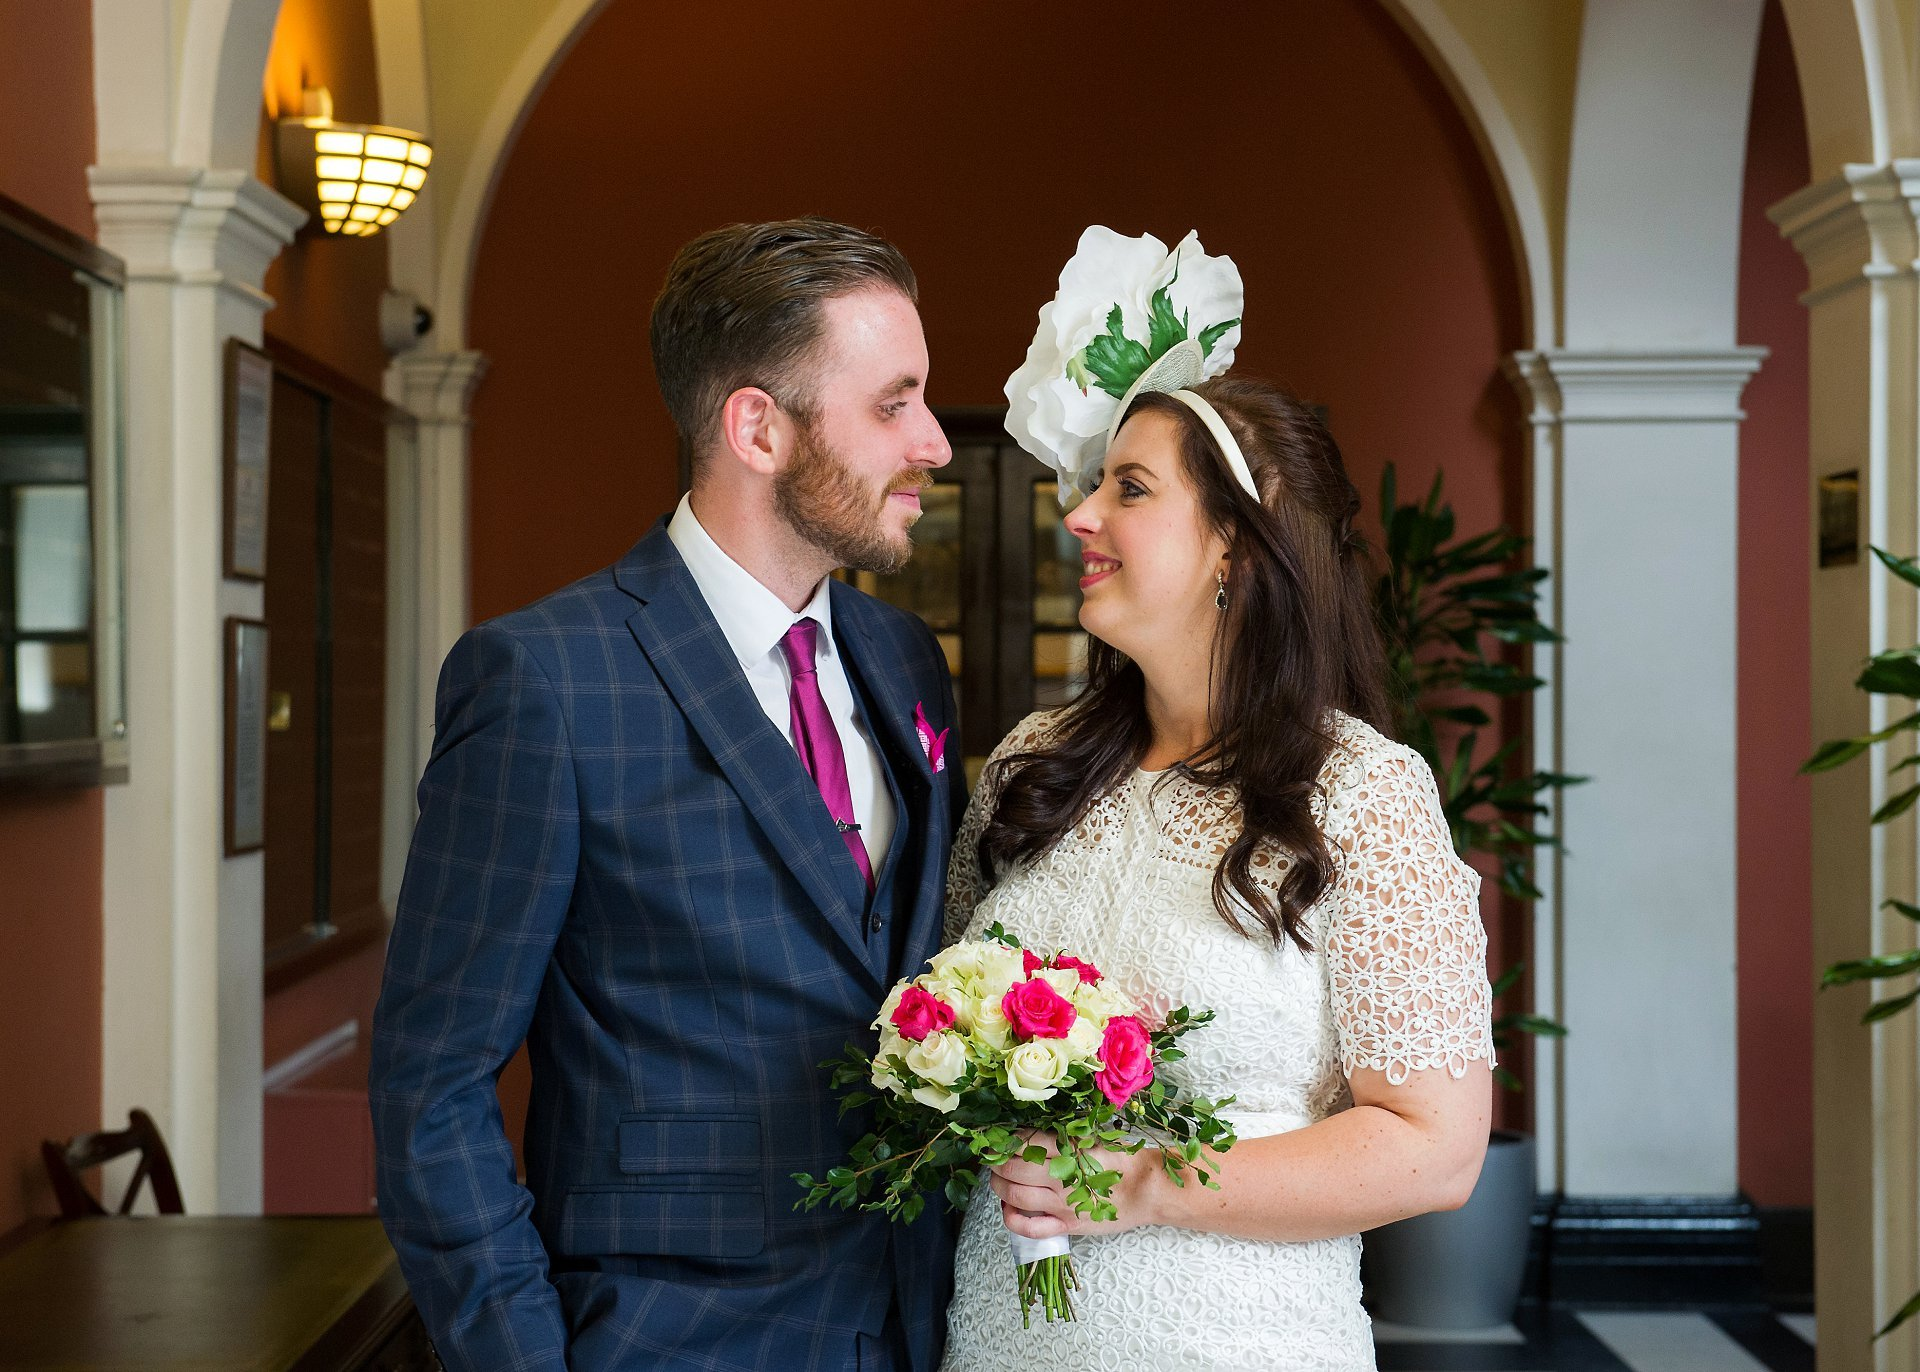 A bride and groom in the waiting room at Chelsea Registry Office by Chelsea Old Town Hall wedding photographer Emma Duggan